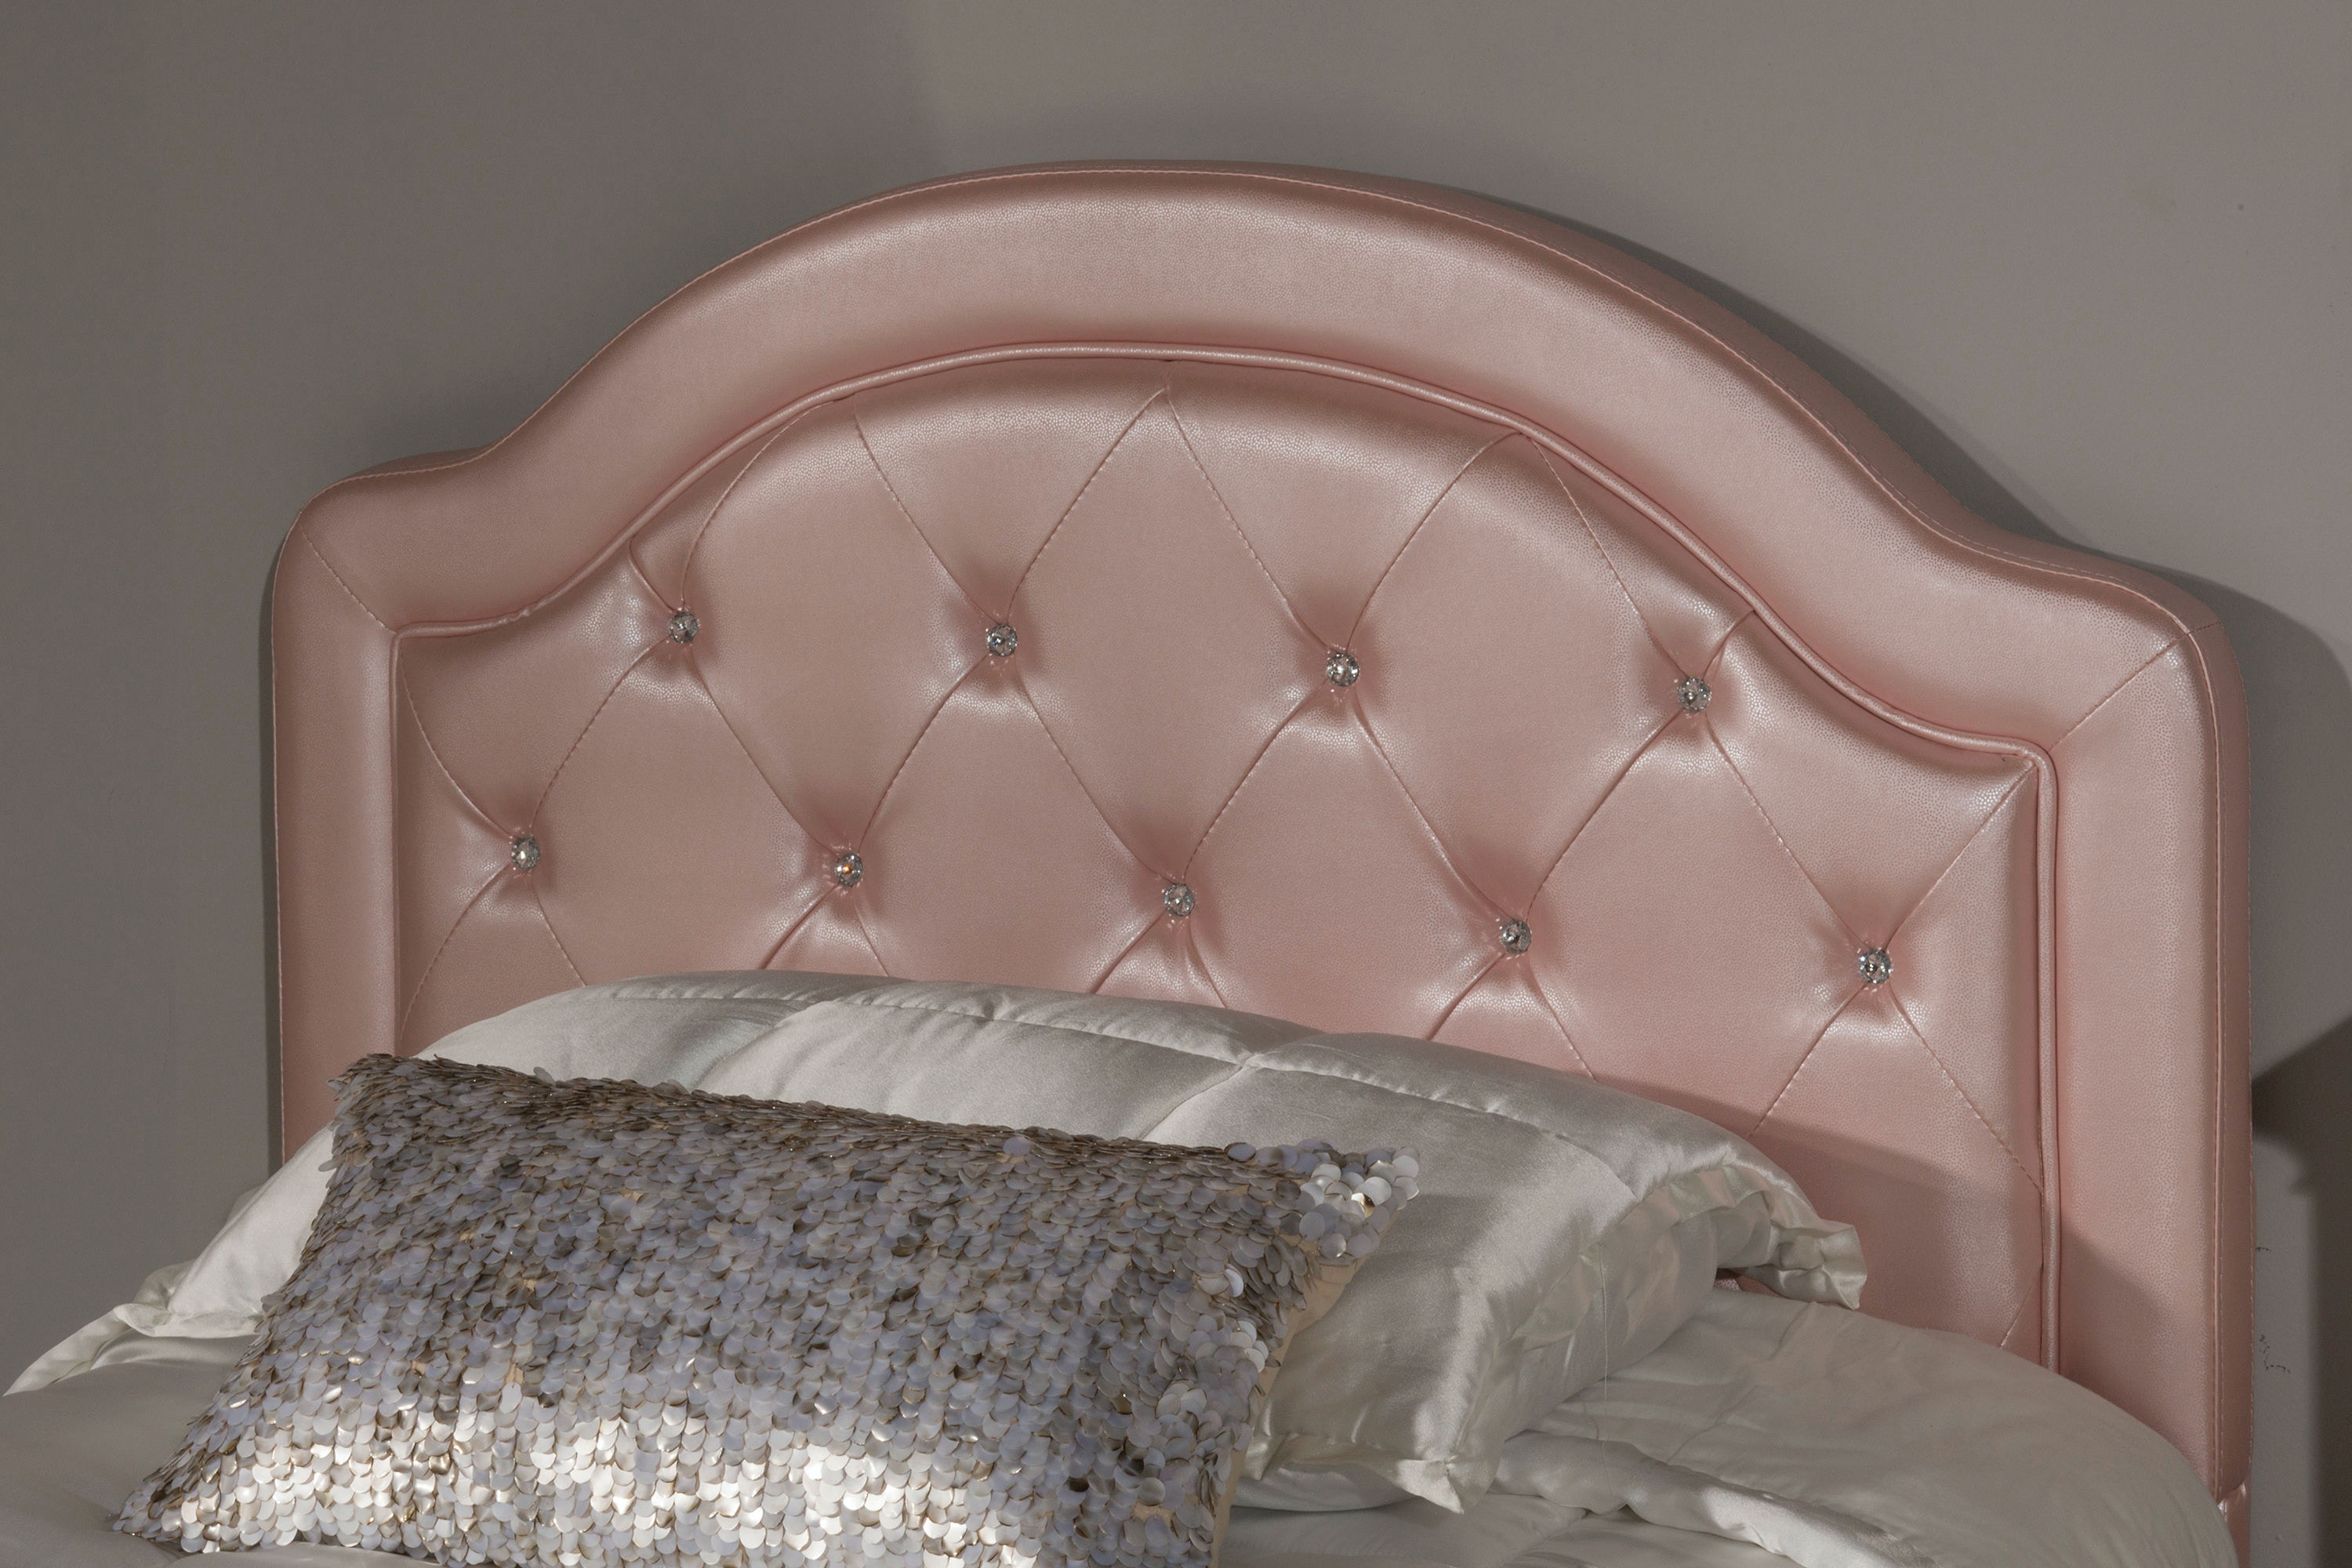 Hillsdale Furniture Youth Karley Headboard   Full   Pink Faux Leather  100947 109018 At Naturwood Home Furnishings